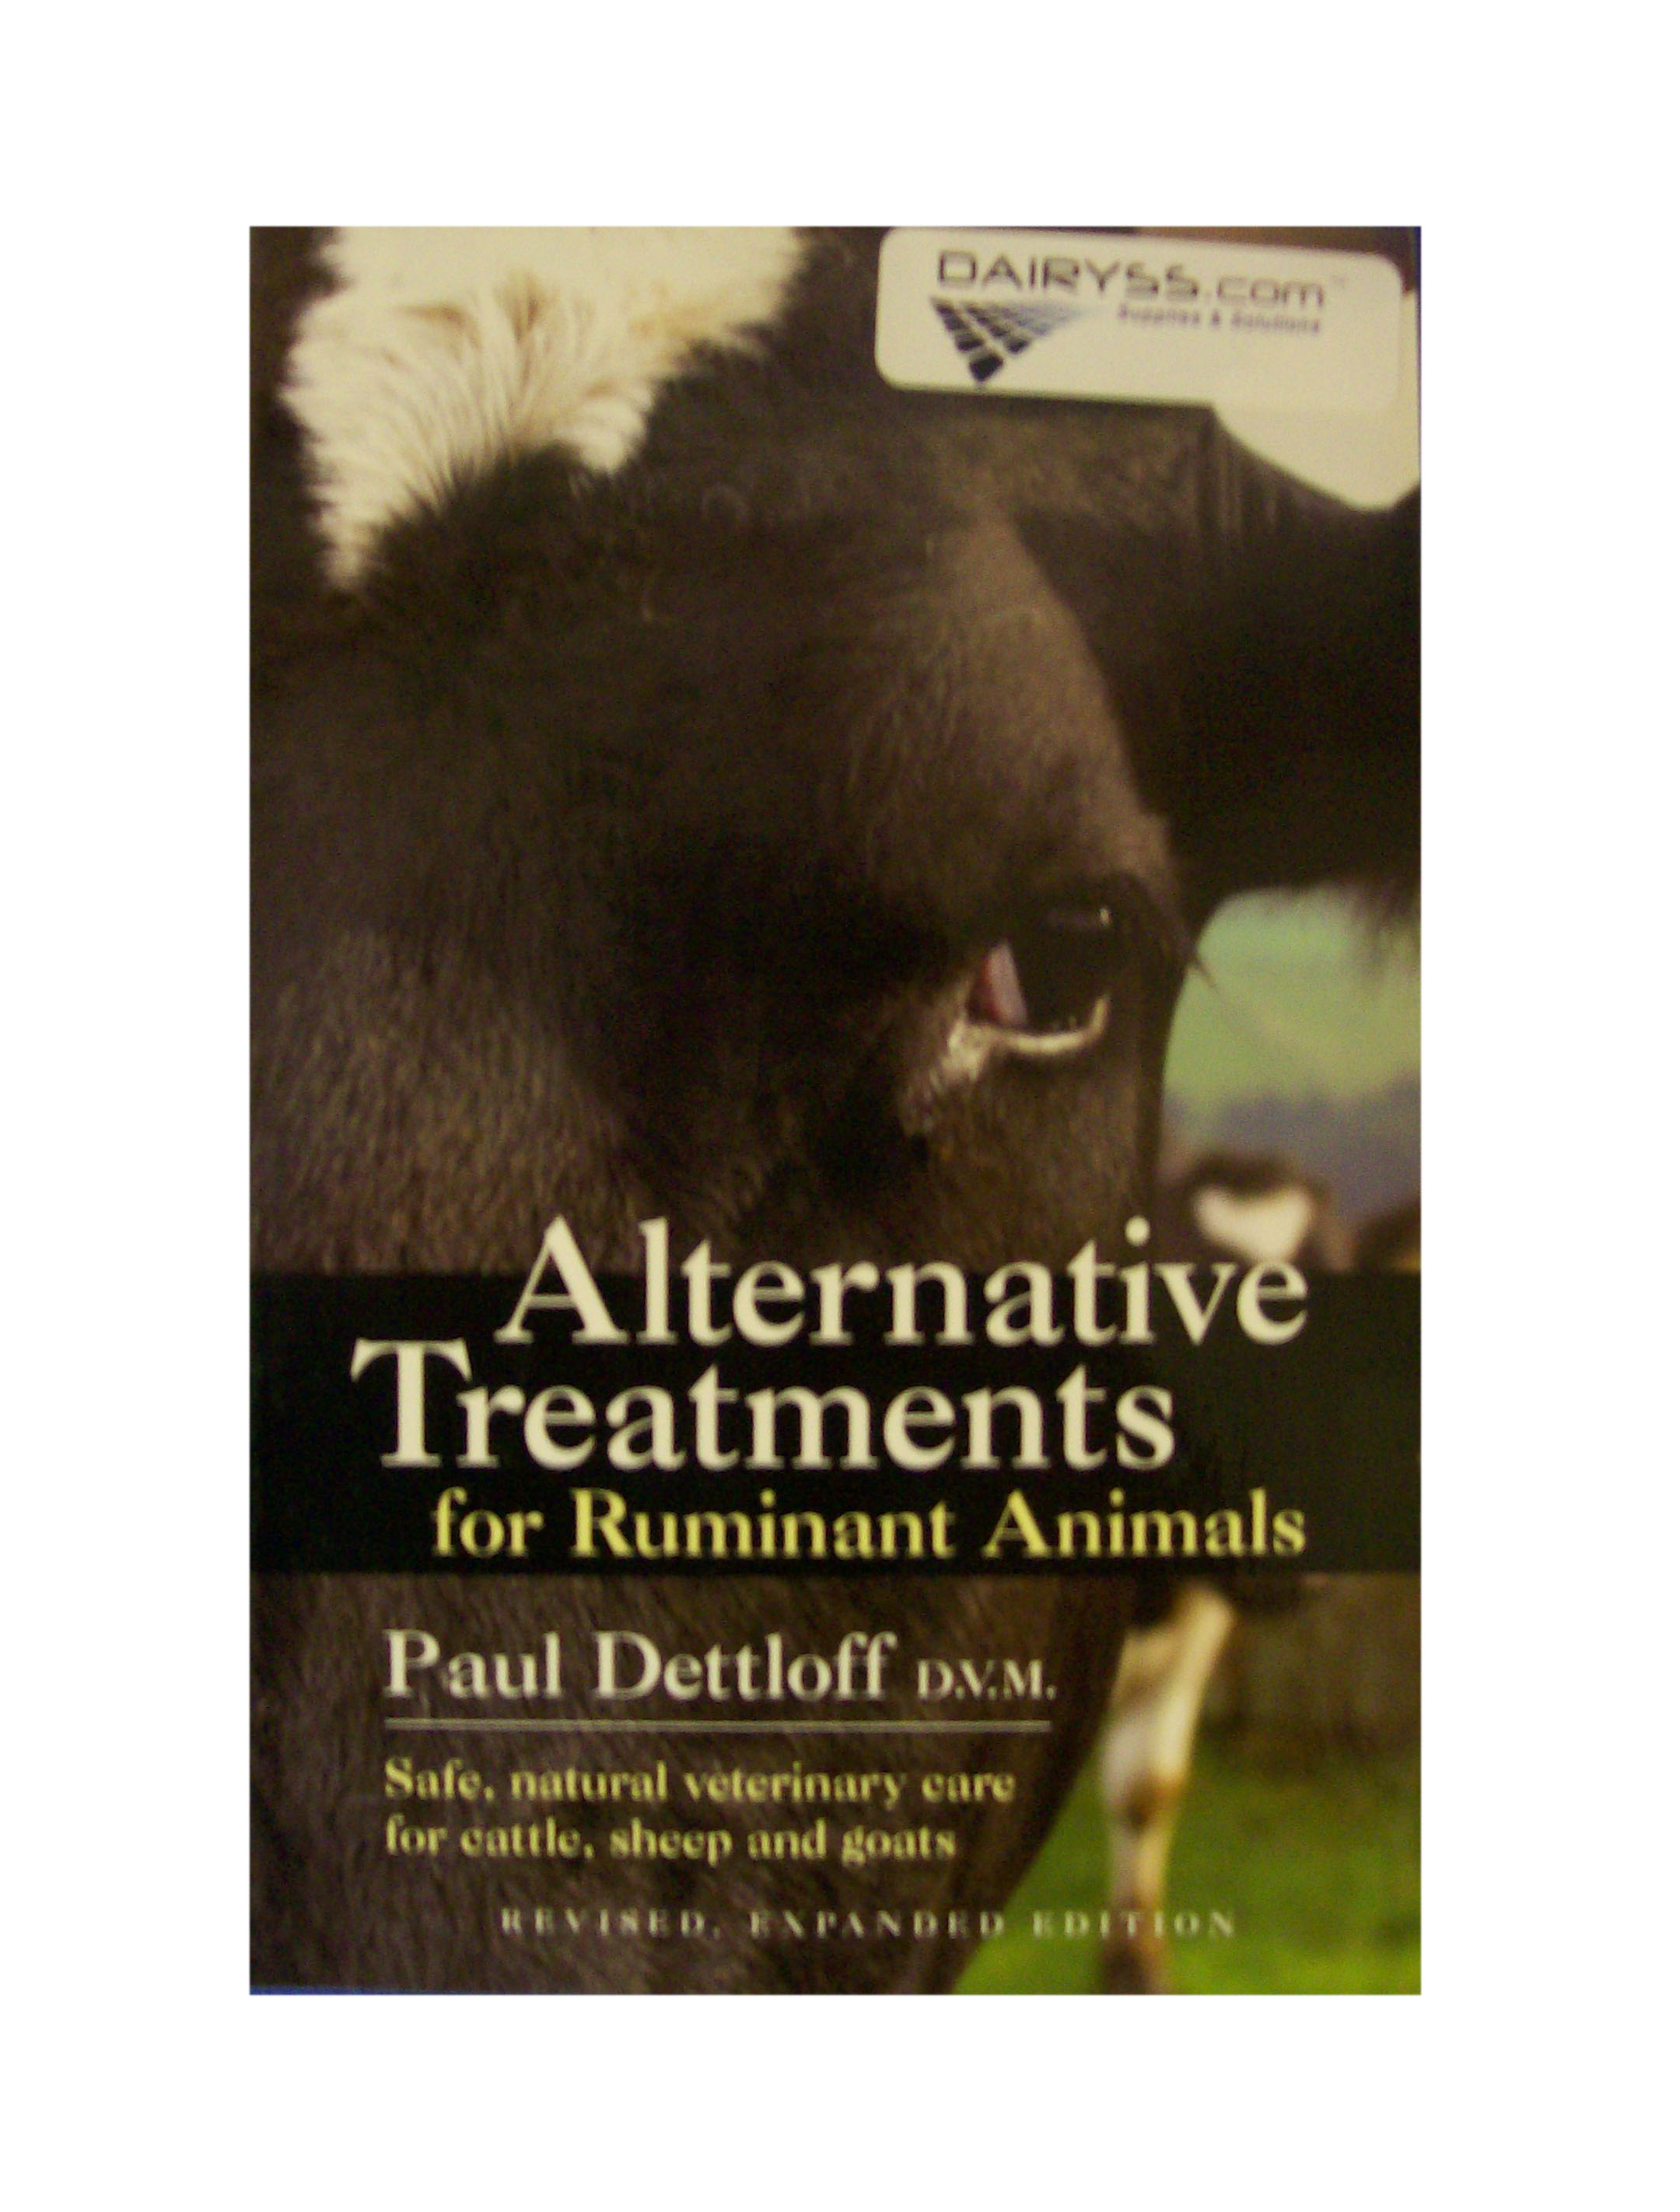 Dr Paul Dettloff's Book , Revised Edition  Dairy. Toyota Of Thomasville Ga Payday Advance Miami. Fine Skin Dermatology Orland Park. Family Law Attorneys In Orange County. Article Marketing Automation 1 Payday Loan. Equipment Sale Leaseback Financing. Foundation Repair San Antonio Texas. Chrysler Special Offers Vw Dealers Pittsburgh. Human Resources Online Programs